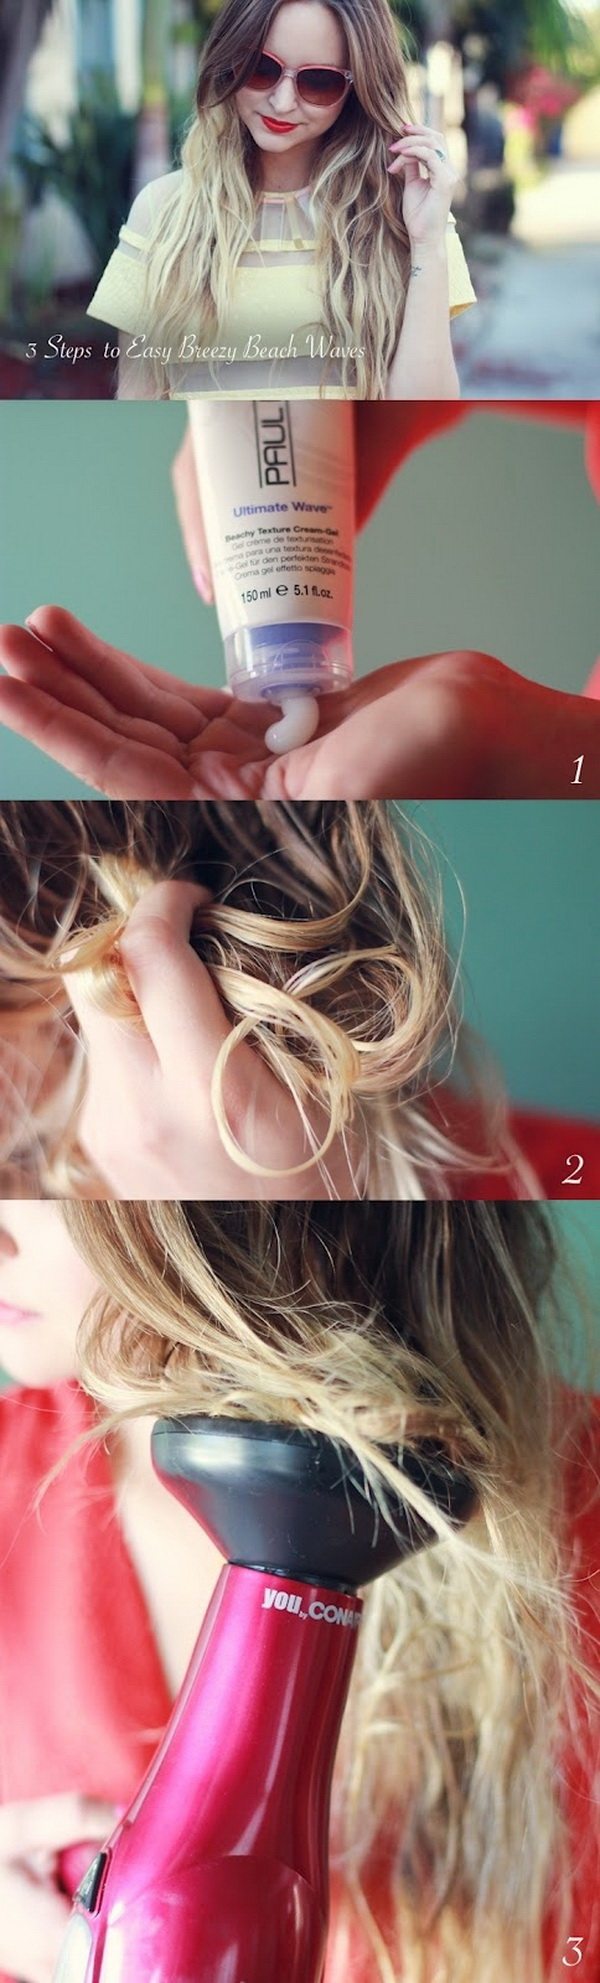 Scrunch your hair with beach spray or gel and use a diffuser. A super-easy and fast method to get simple waves without using any styling tools!